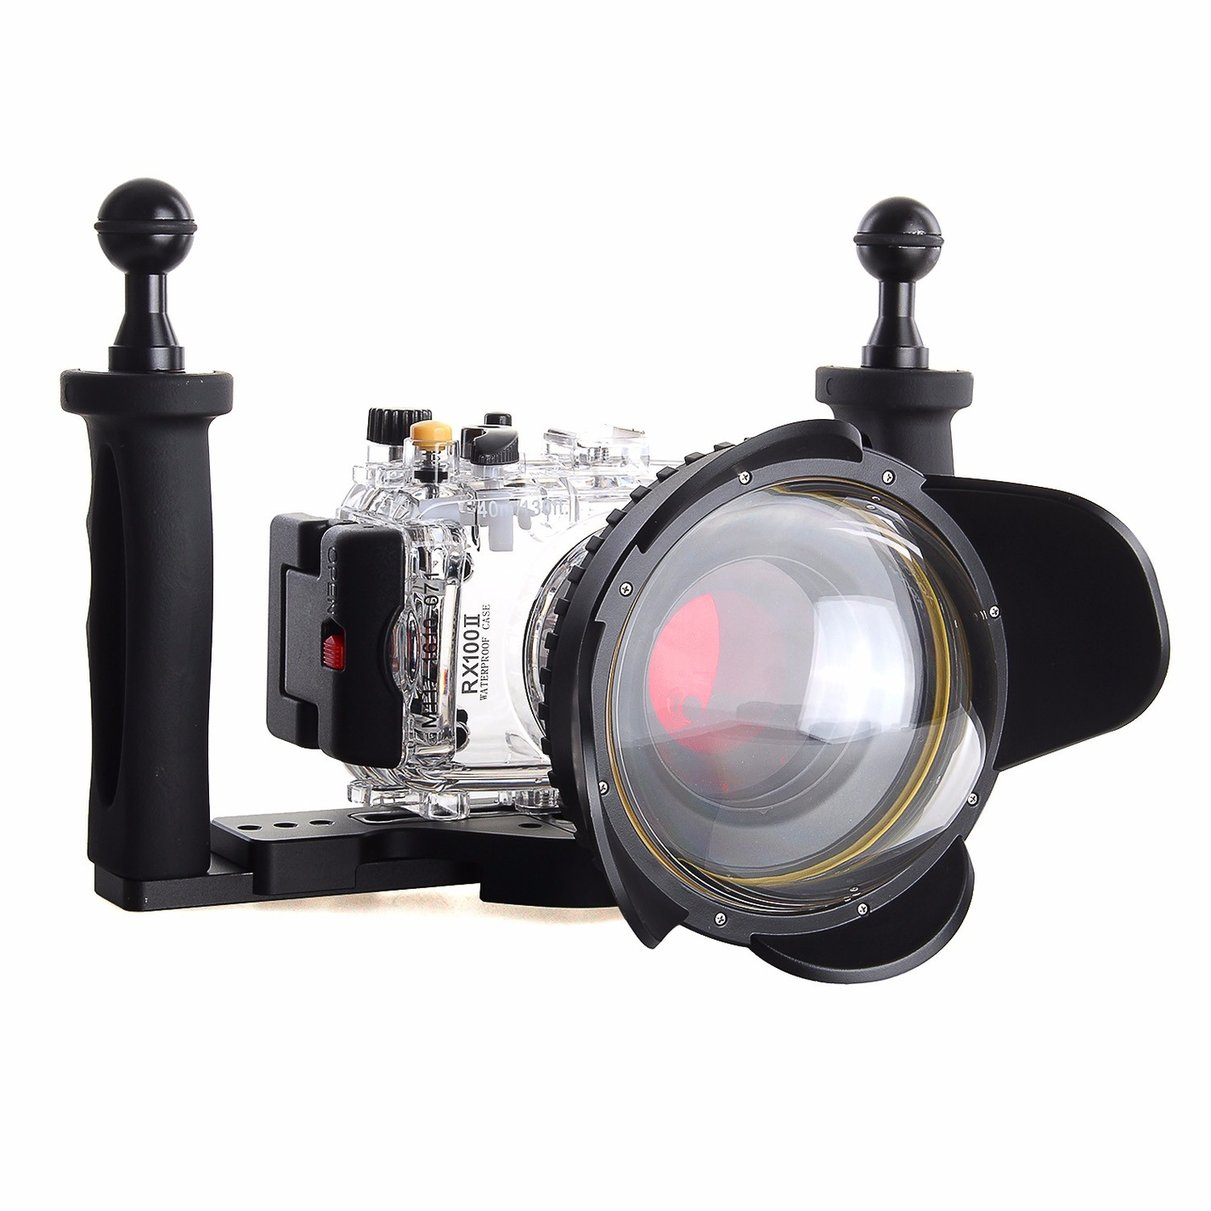 40m Waterproof Underwater Camera Housing Diving Case for SONY RX100 ii + Red Filter + Fisheye Lens + Two Hands Aluminium Tray ...